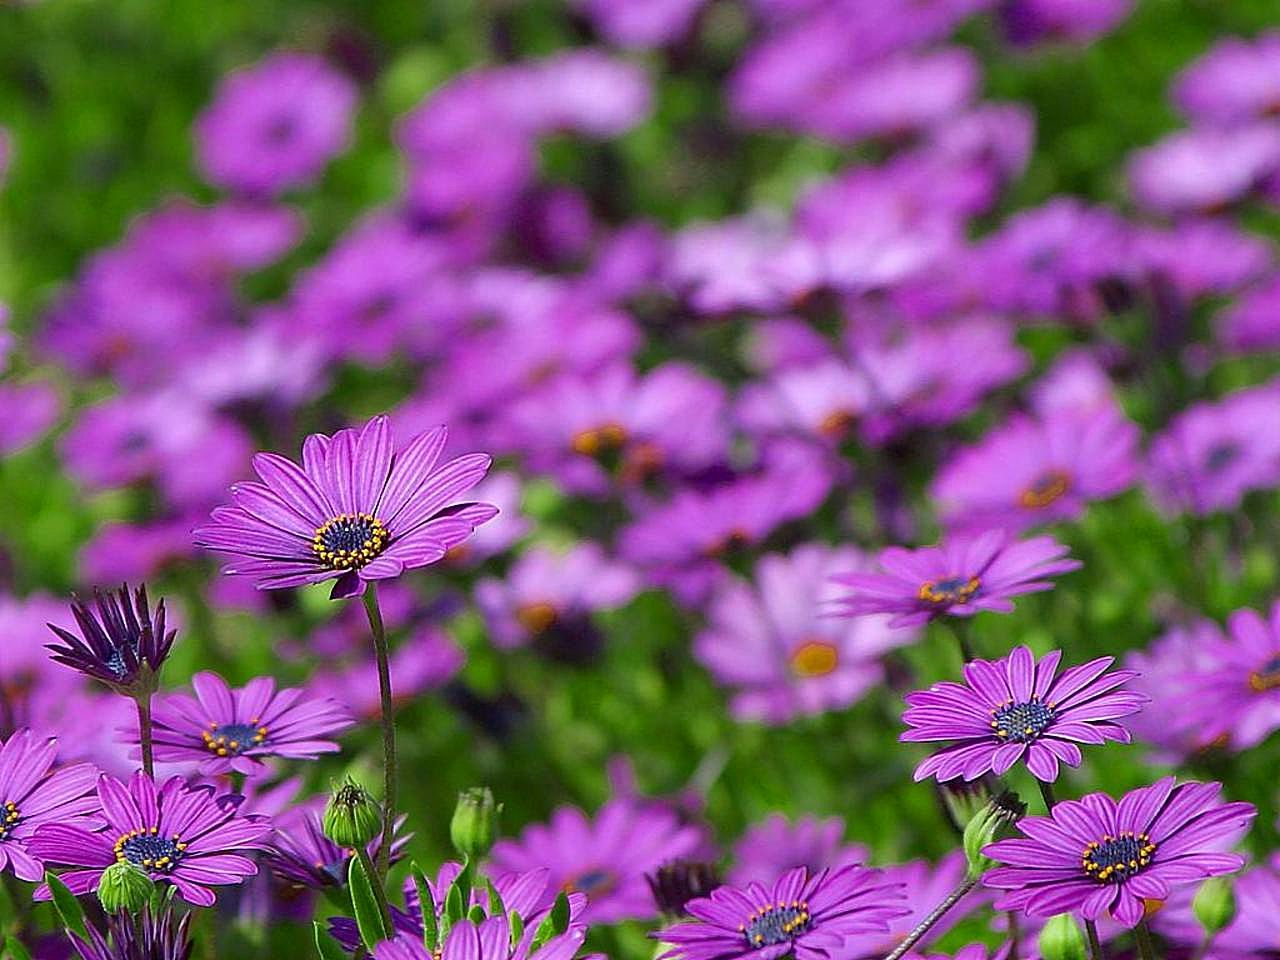 Free picture daisy daisies flowers purple daisy daisies flowers purple izmirmasajfo Choice Image